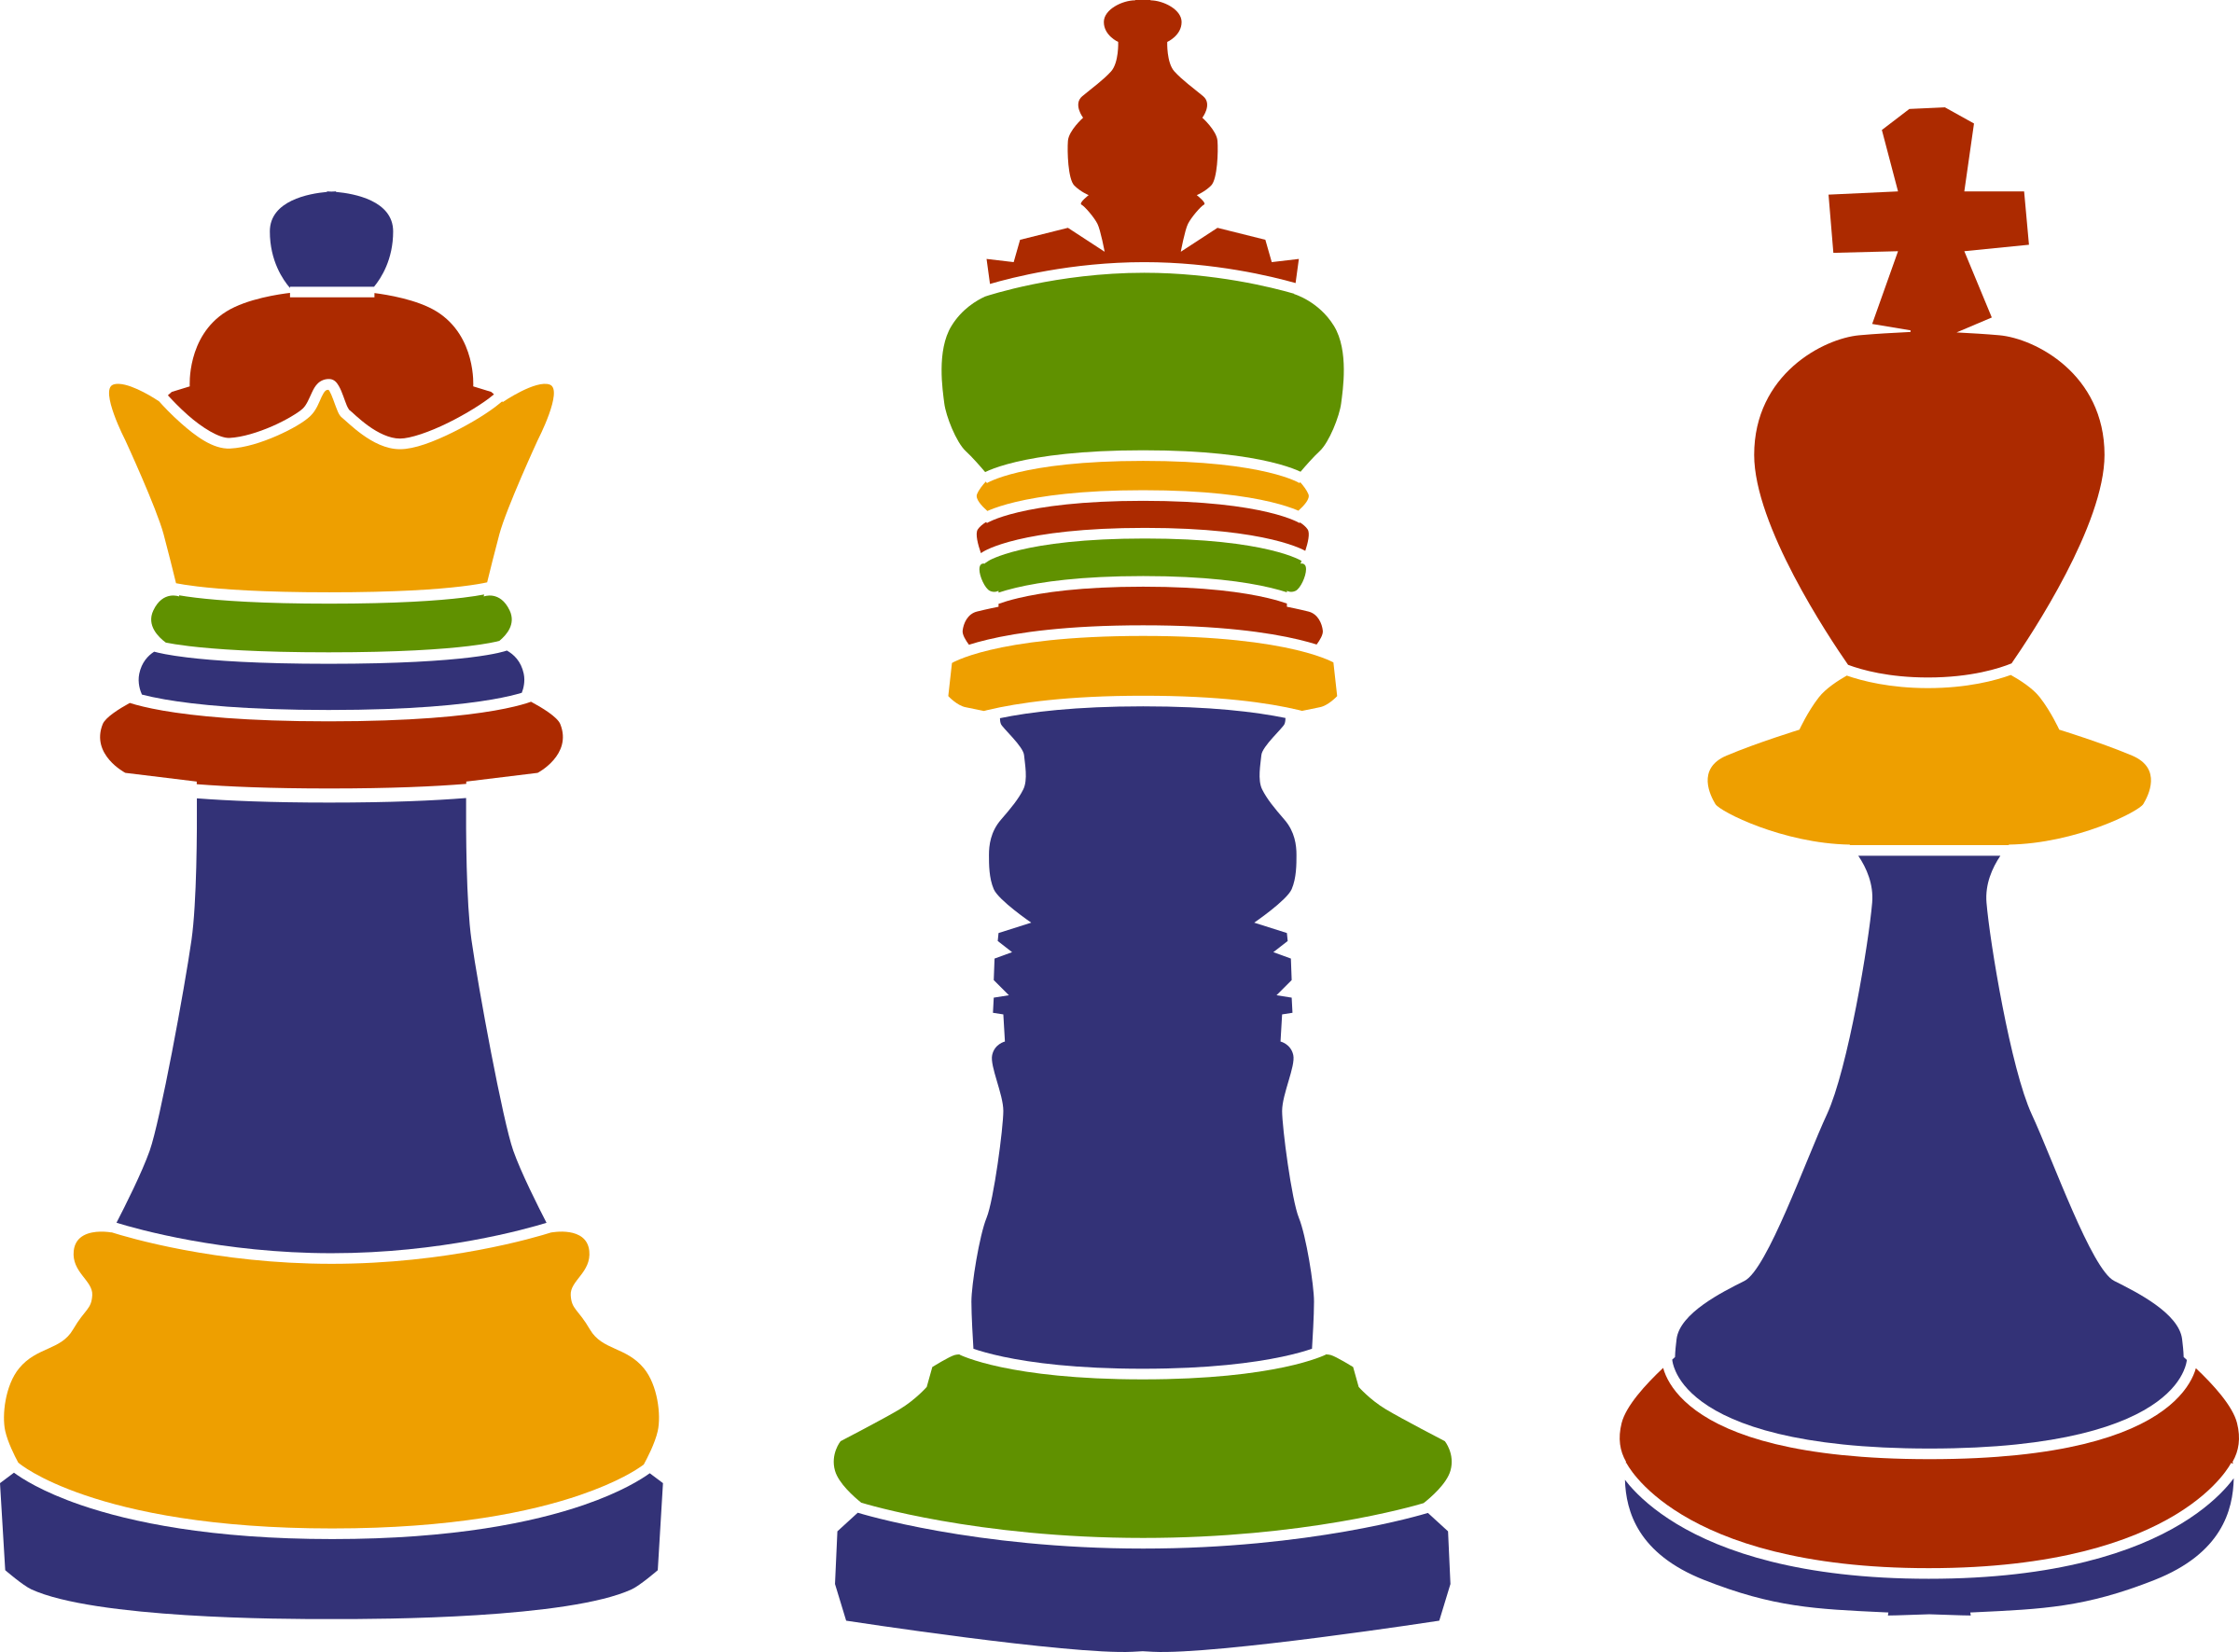 svg library stock Kings big image png. Chess clipart indoor game